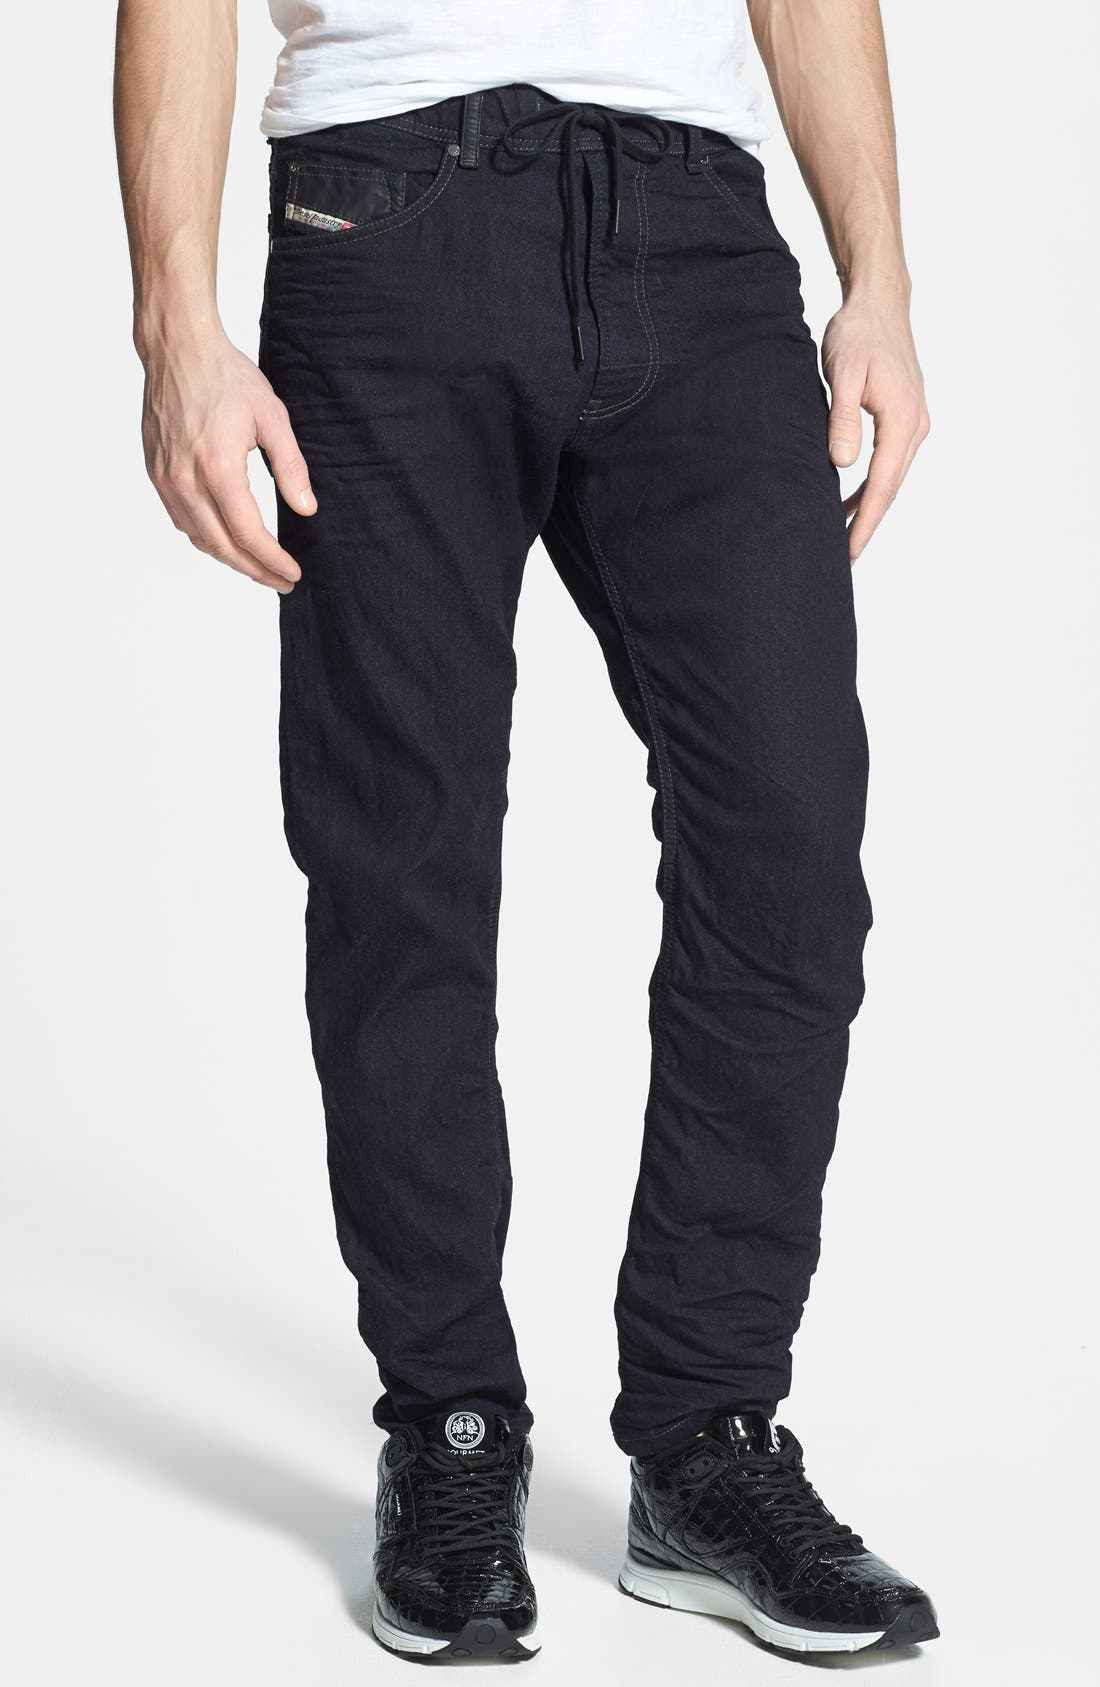 Alternate Image 1 Selected - DIESEL® 'Narrot Jogg' Slim Fit Jeans (600V)